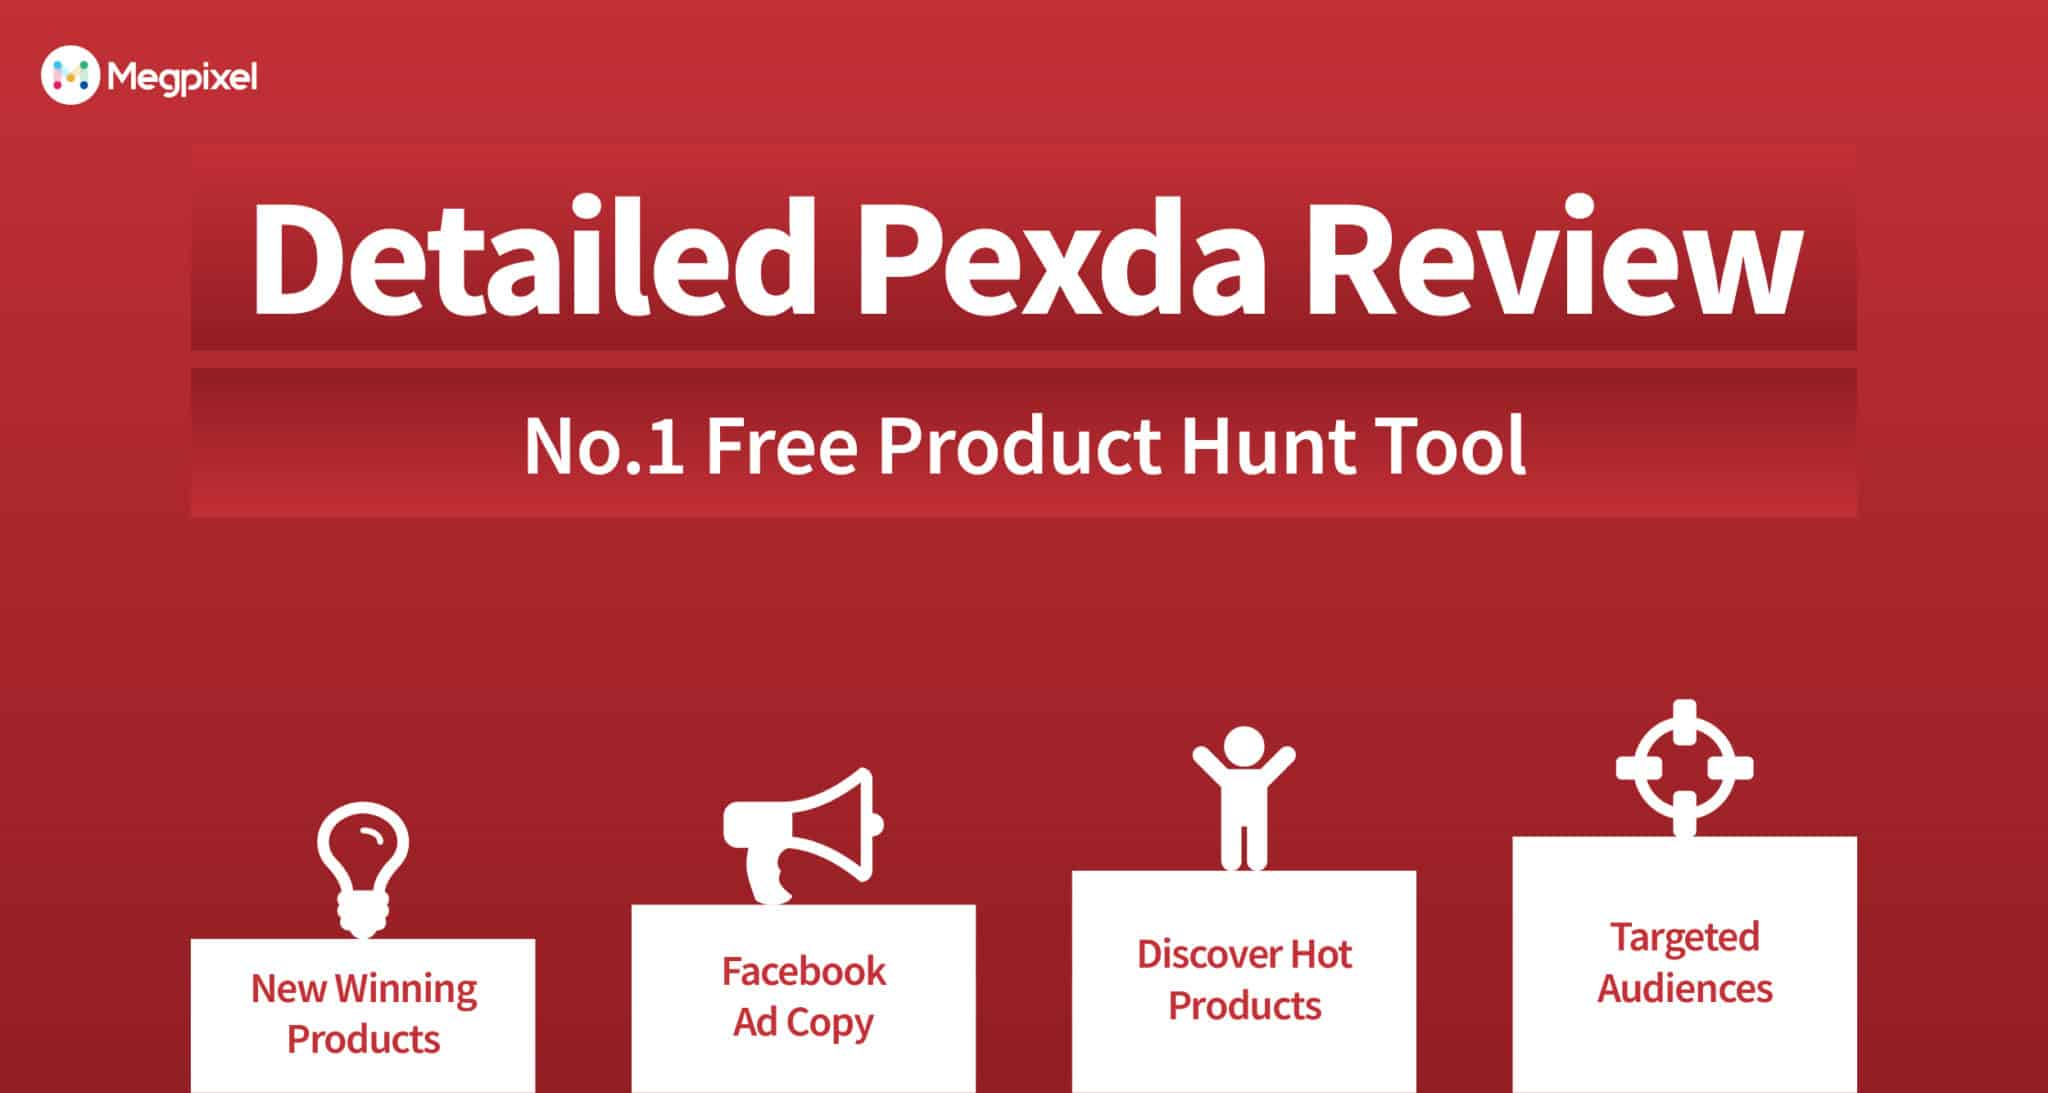 Everything About Pexda | Detailed Pexda Review | No.1 Product Hunt Tool